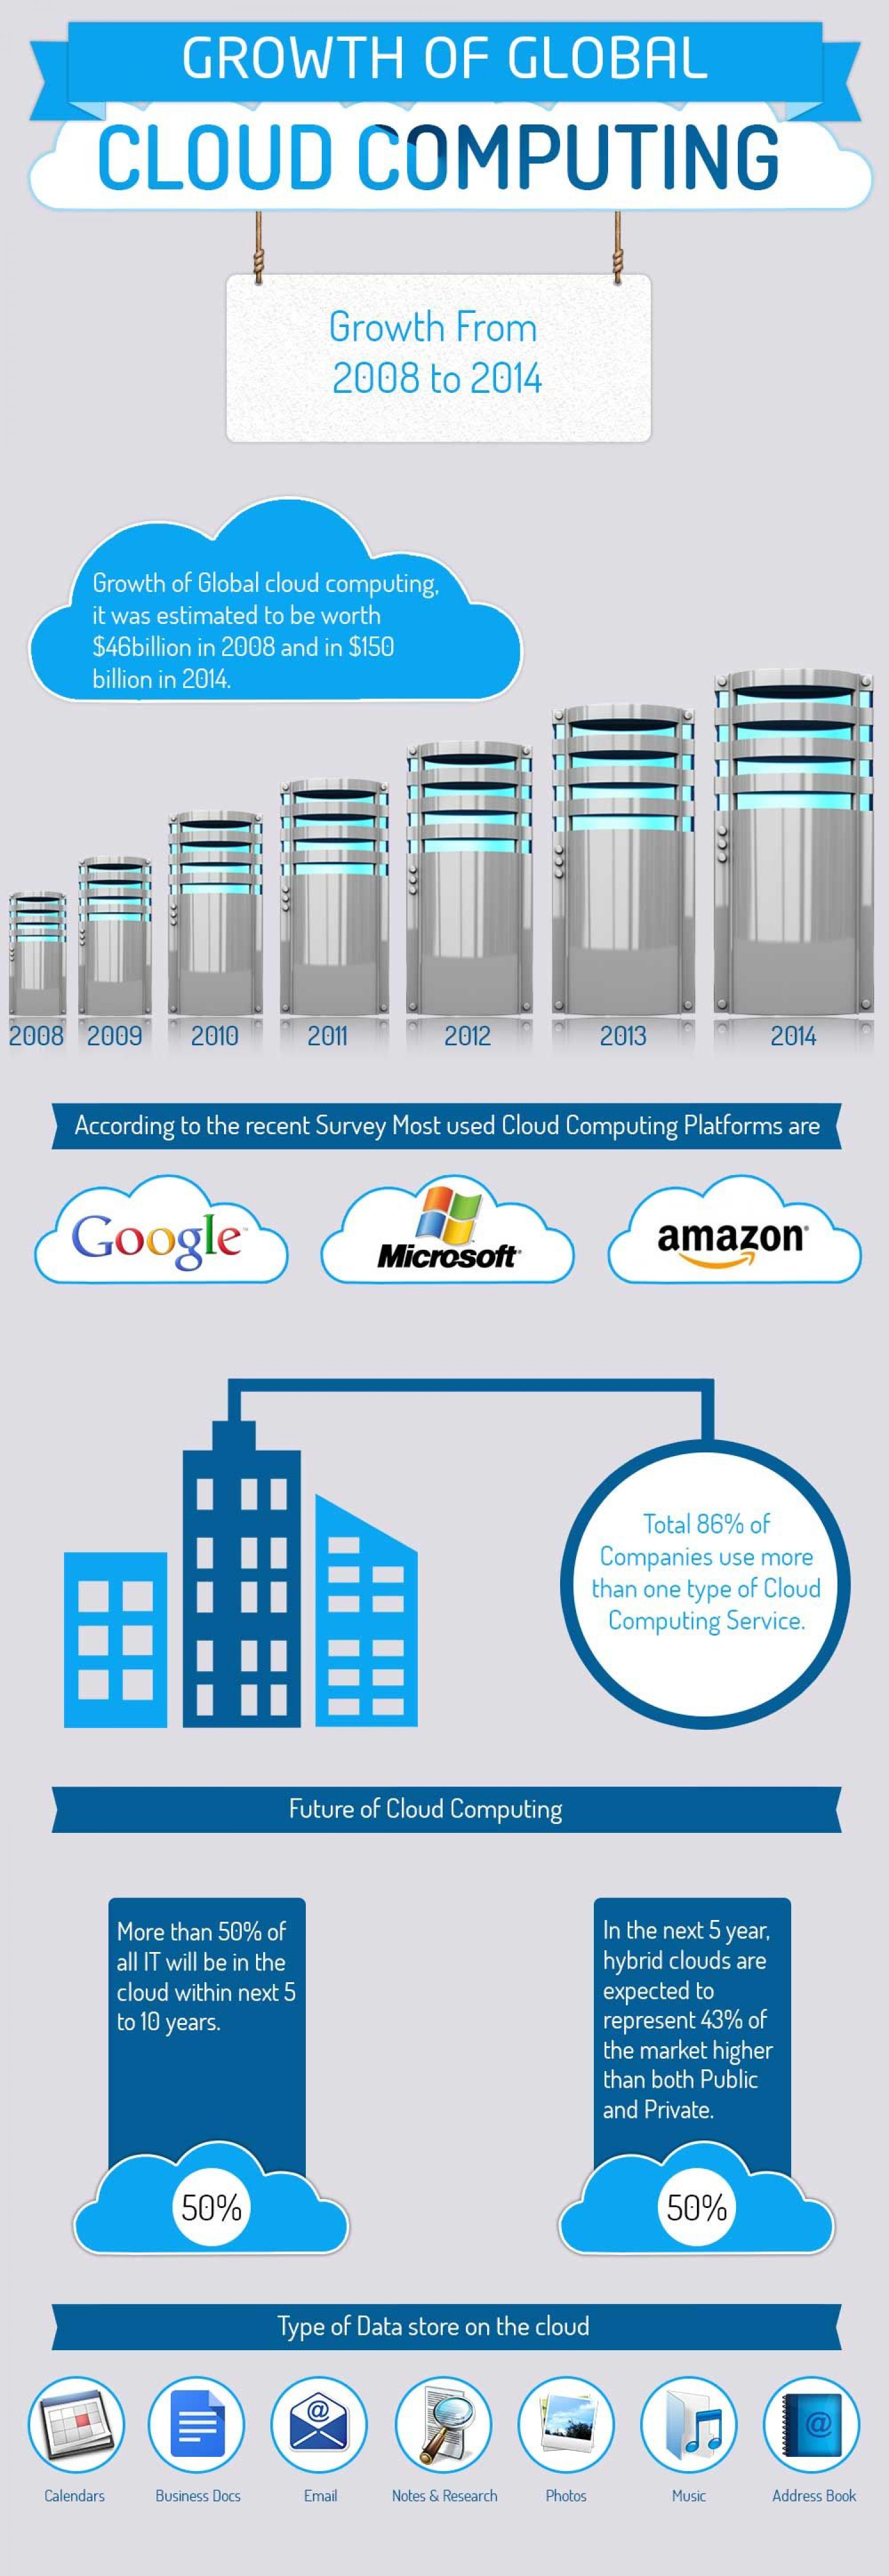 Growth of Global Cloud Computing Infographic